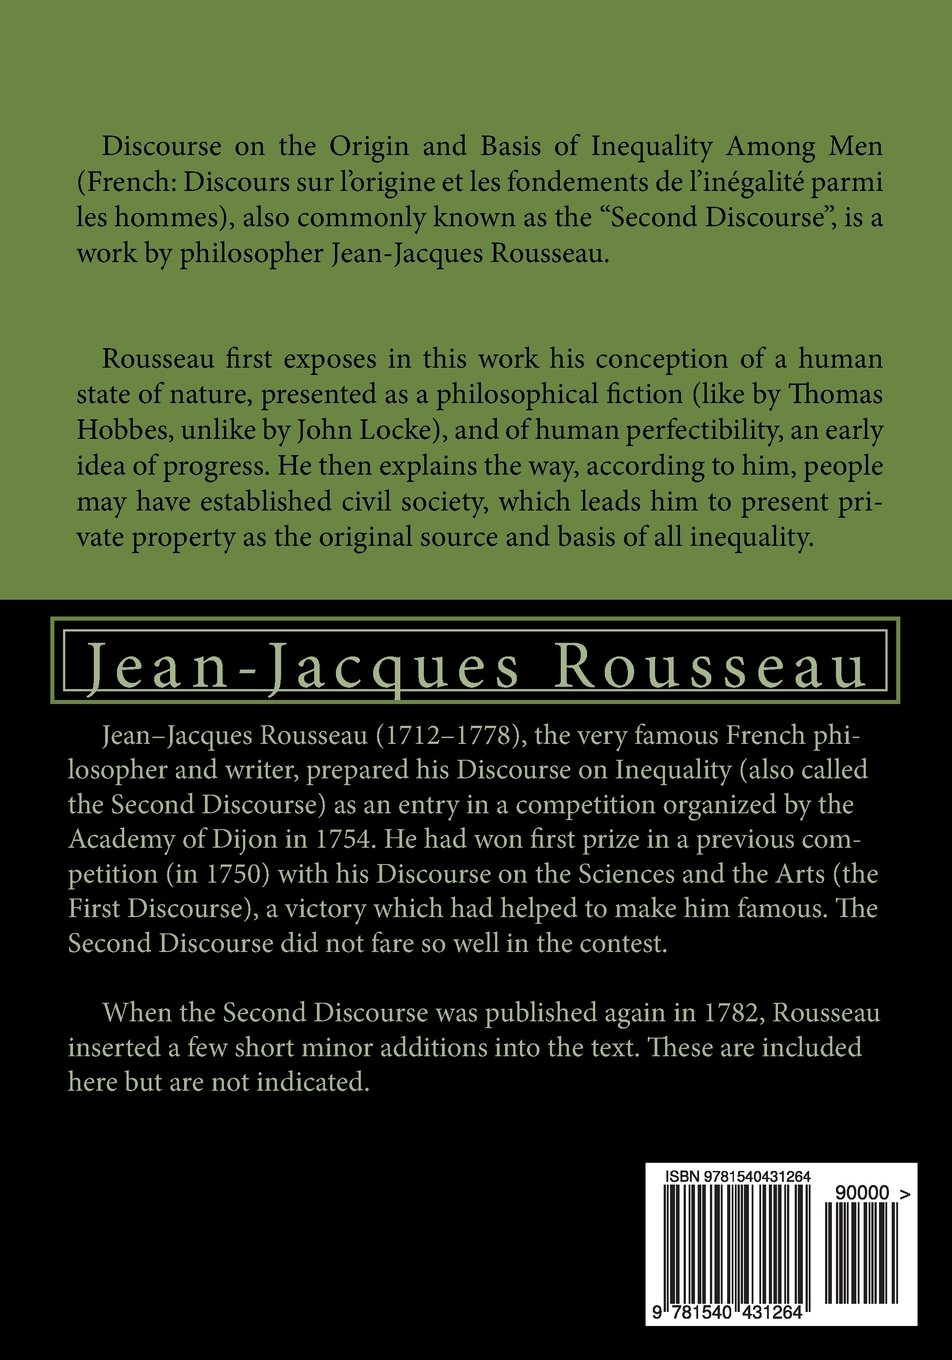 jean jacques rousseau state of nature